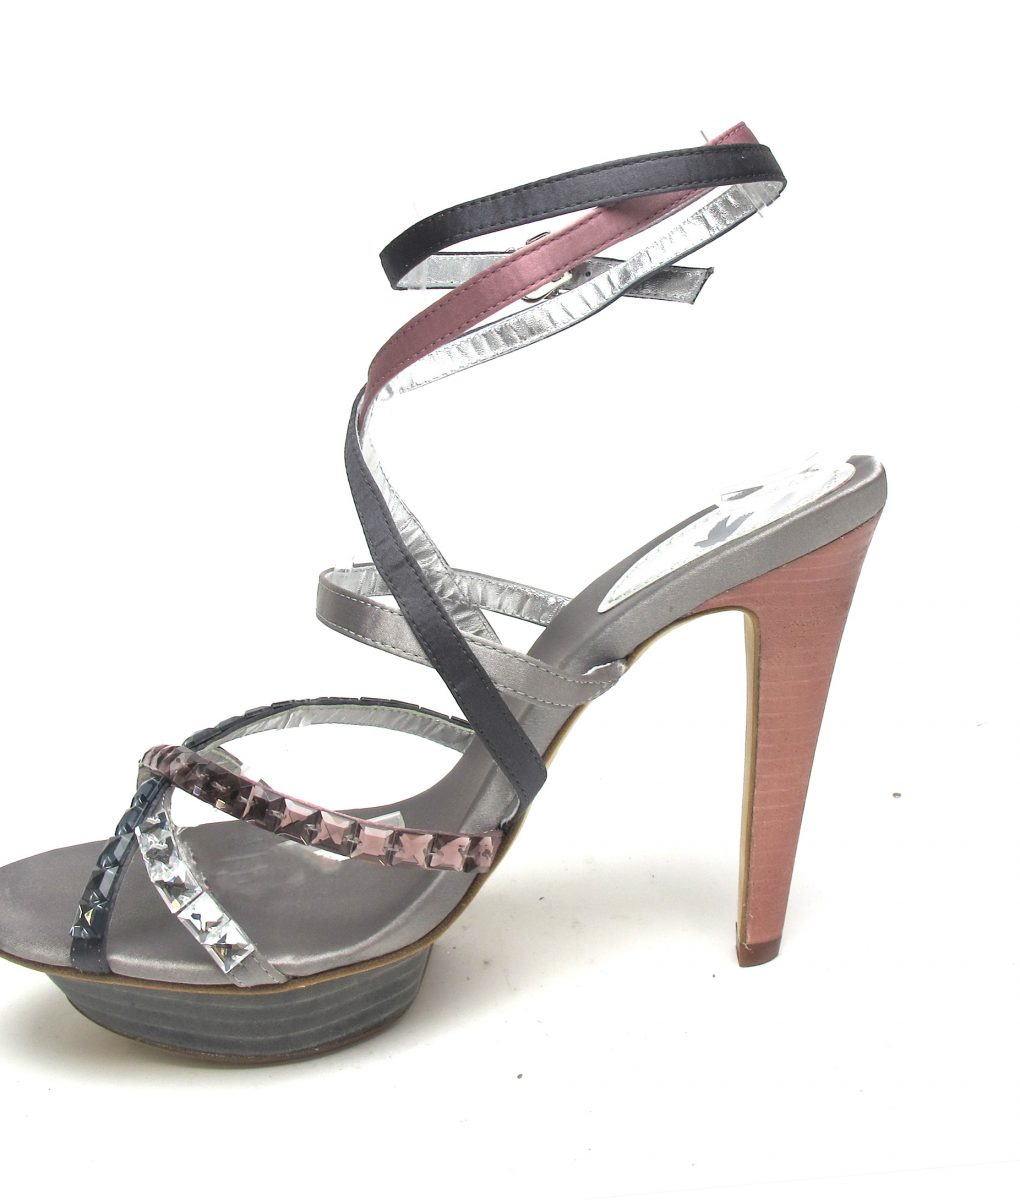 Tsuru Grey & Pink strappy heels with crystals